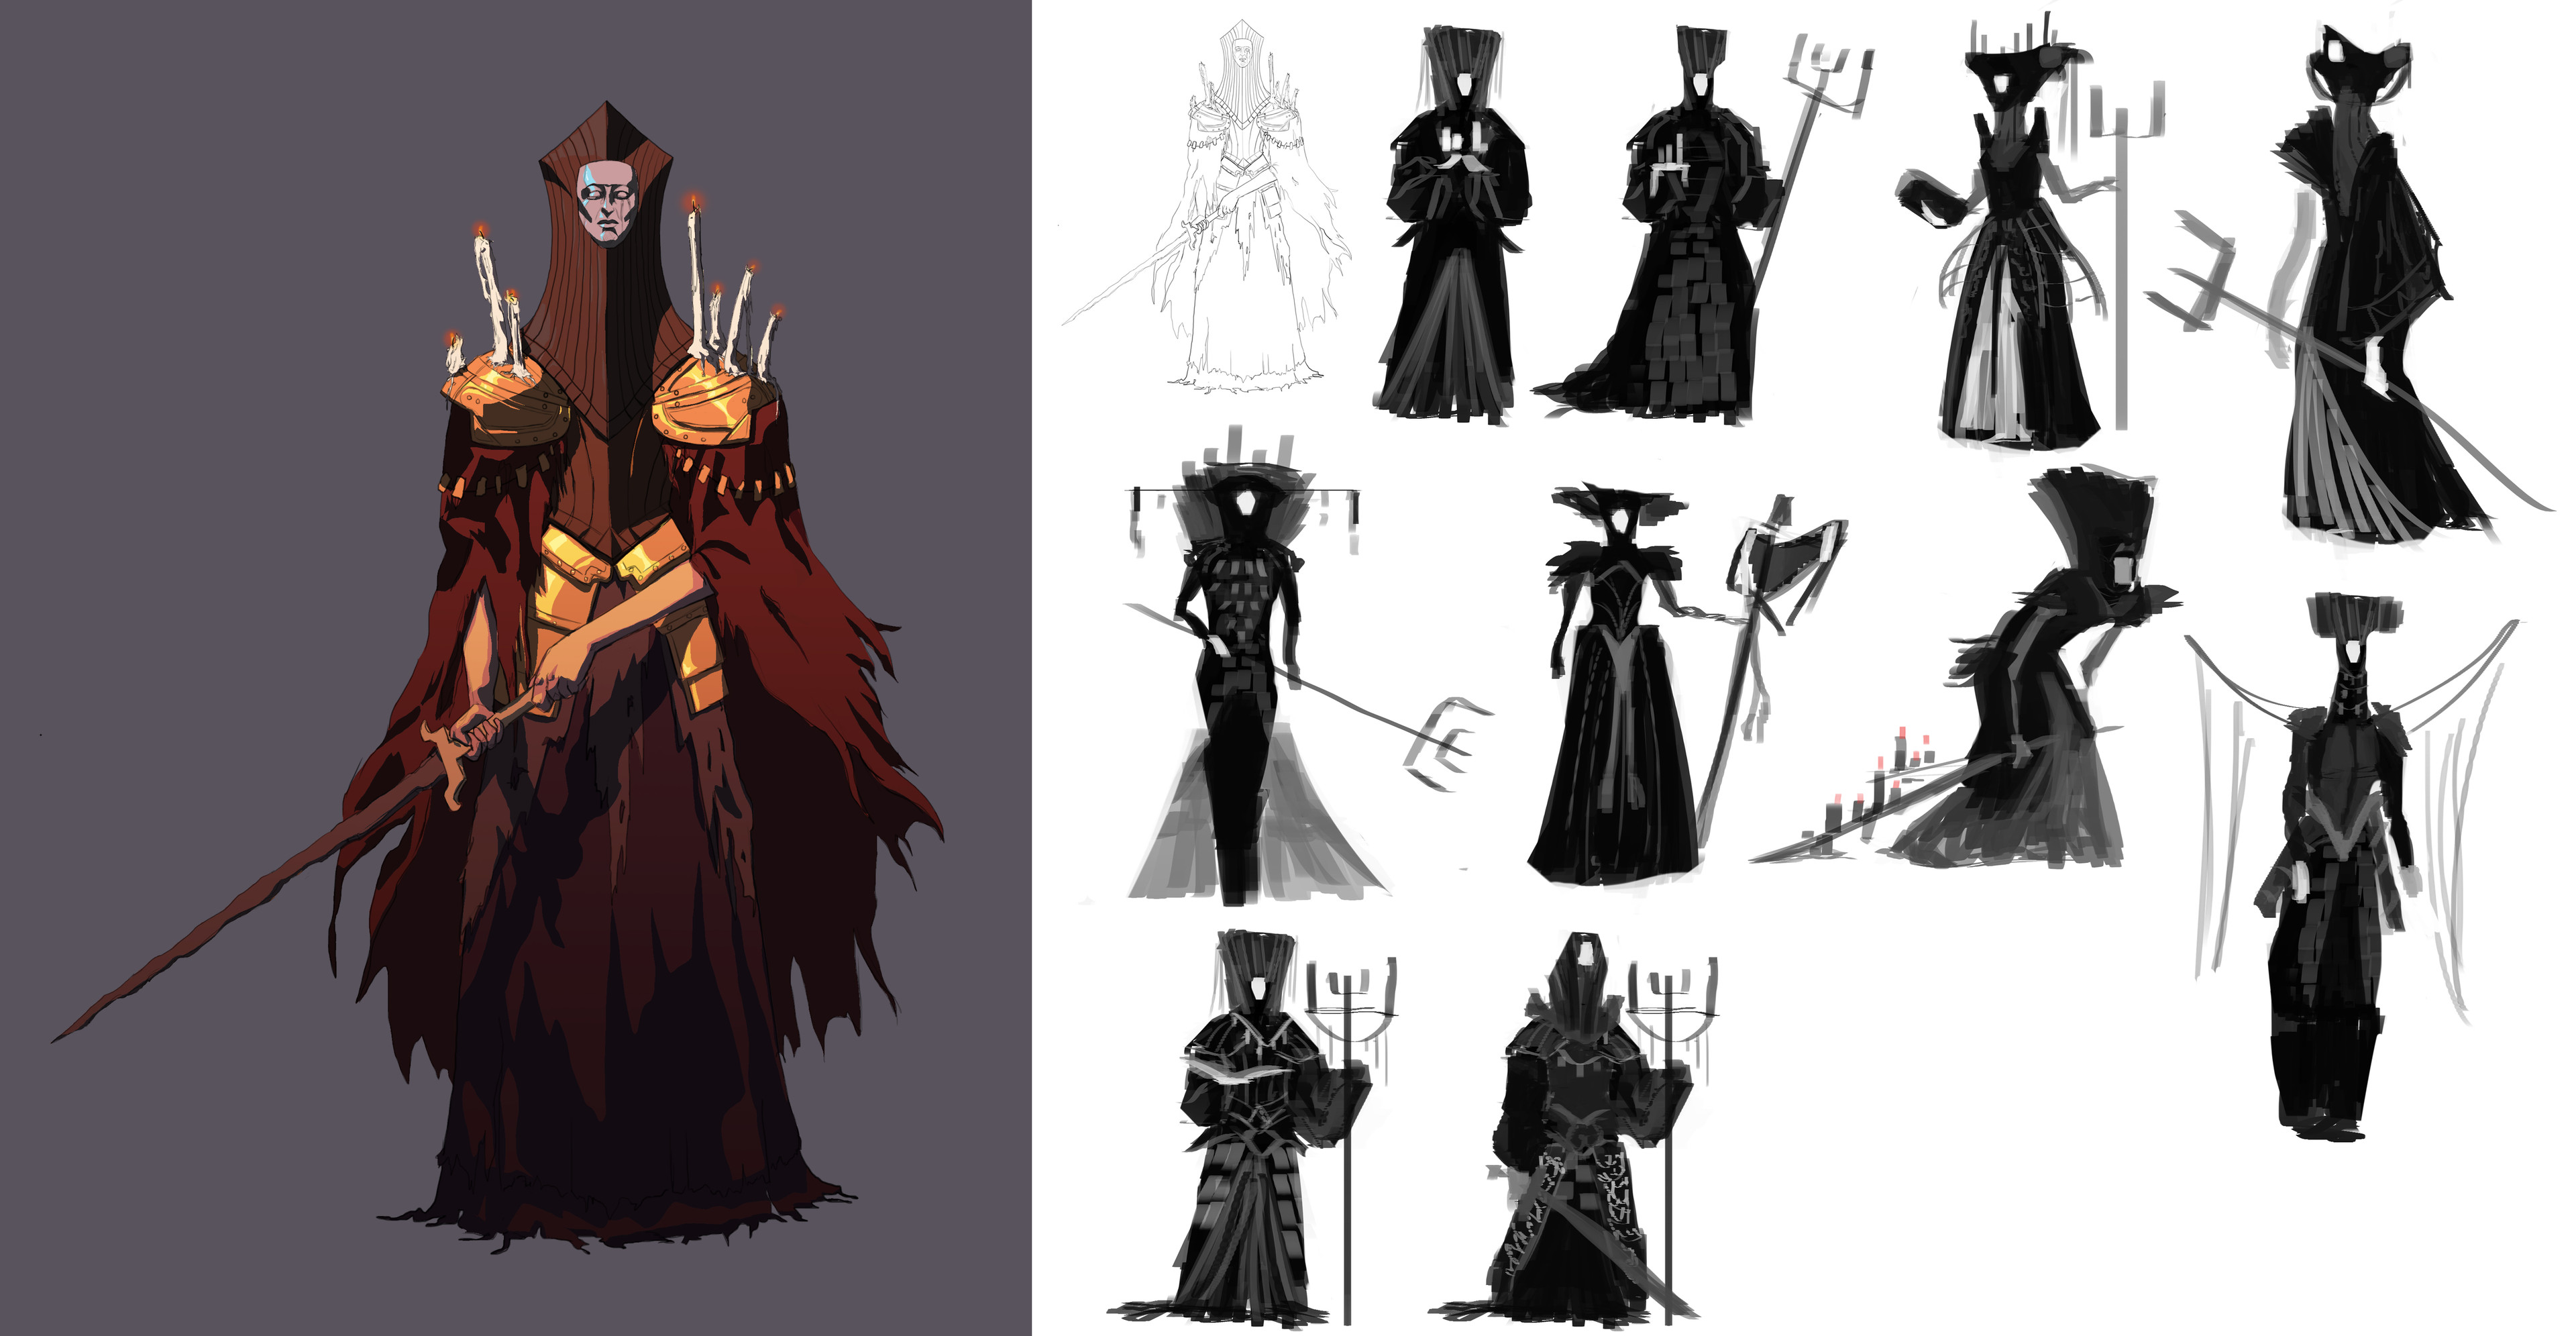 First rough silhouette explorations of the Iron Maiden character